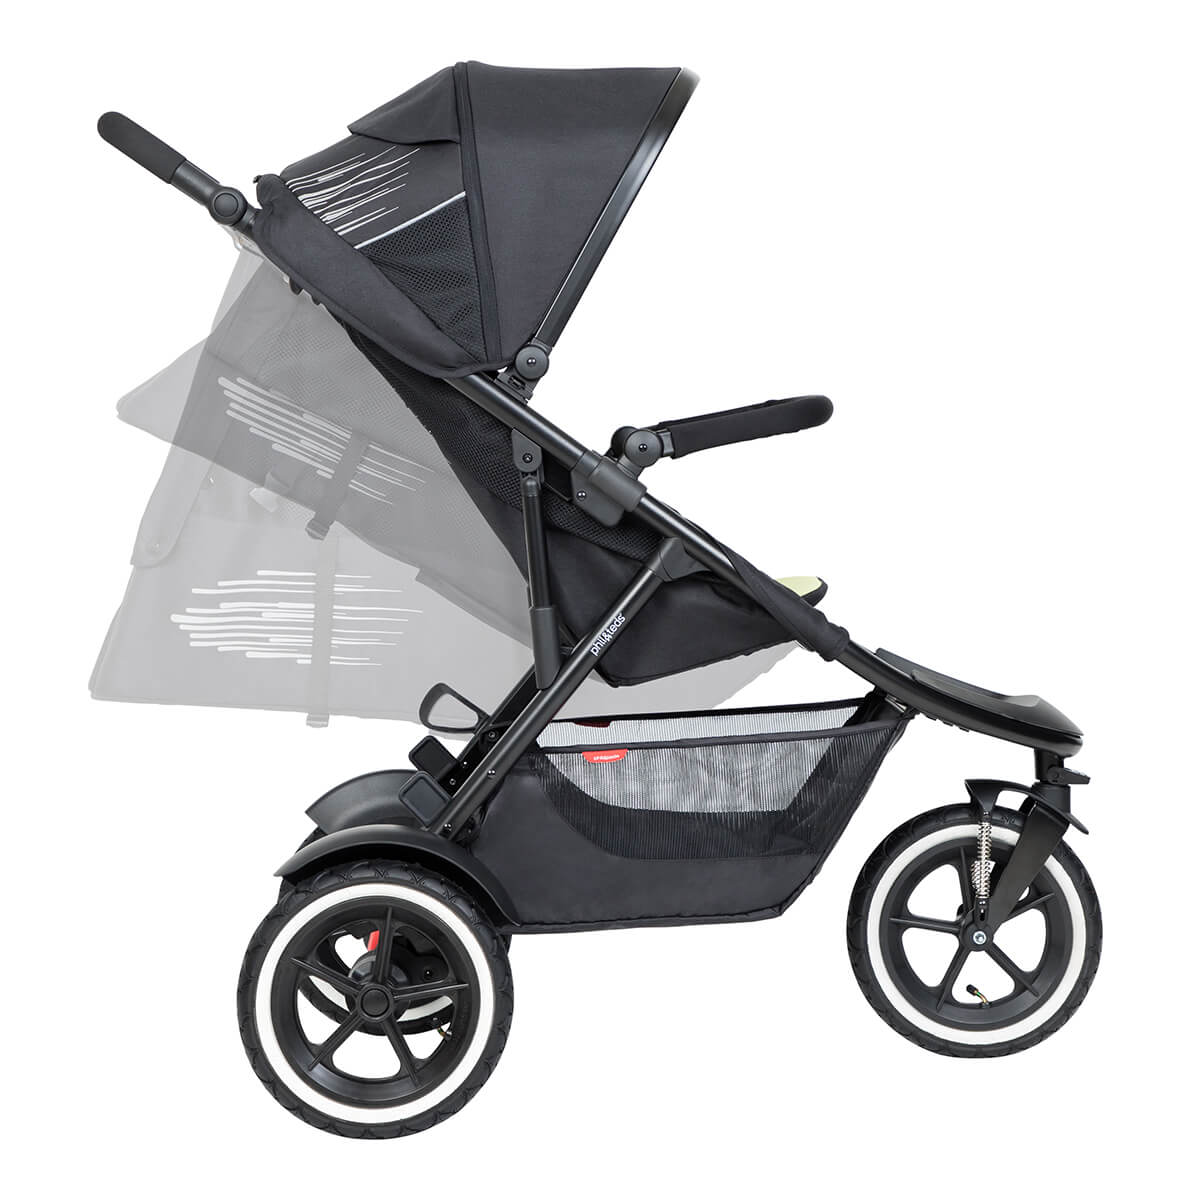 https://cdn.accentuate.io/4513462419552/19440099492024/philteds-sport-buggy-can-recline-in-multiple-angles-including-full-recline-for-newborn-baby-v1626486514556.jpg?1200x1200